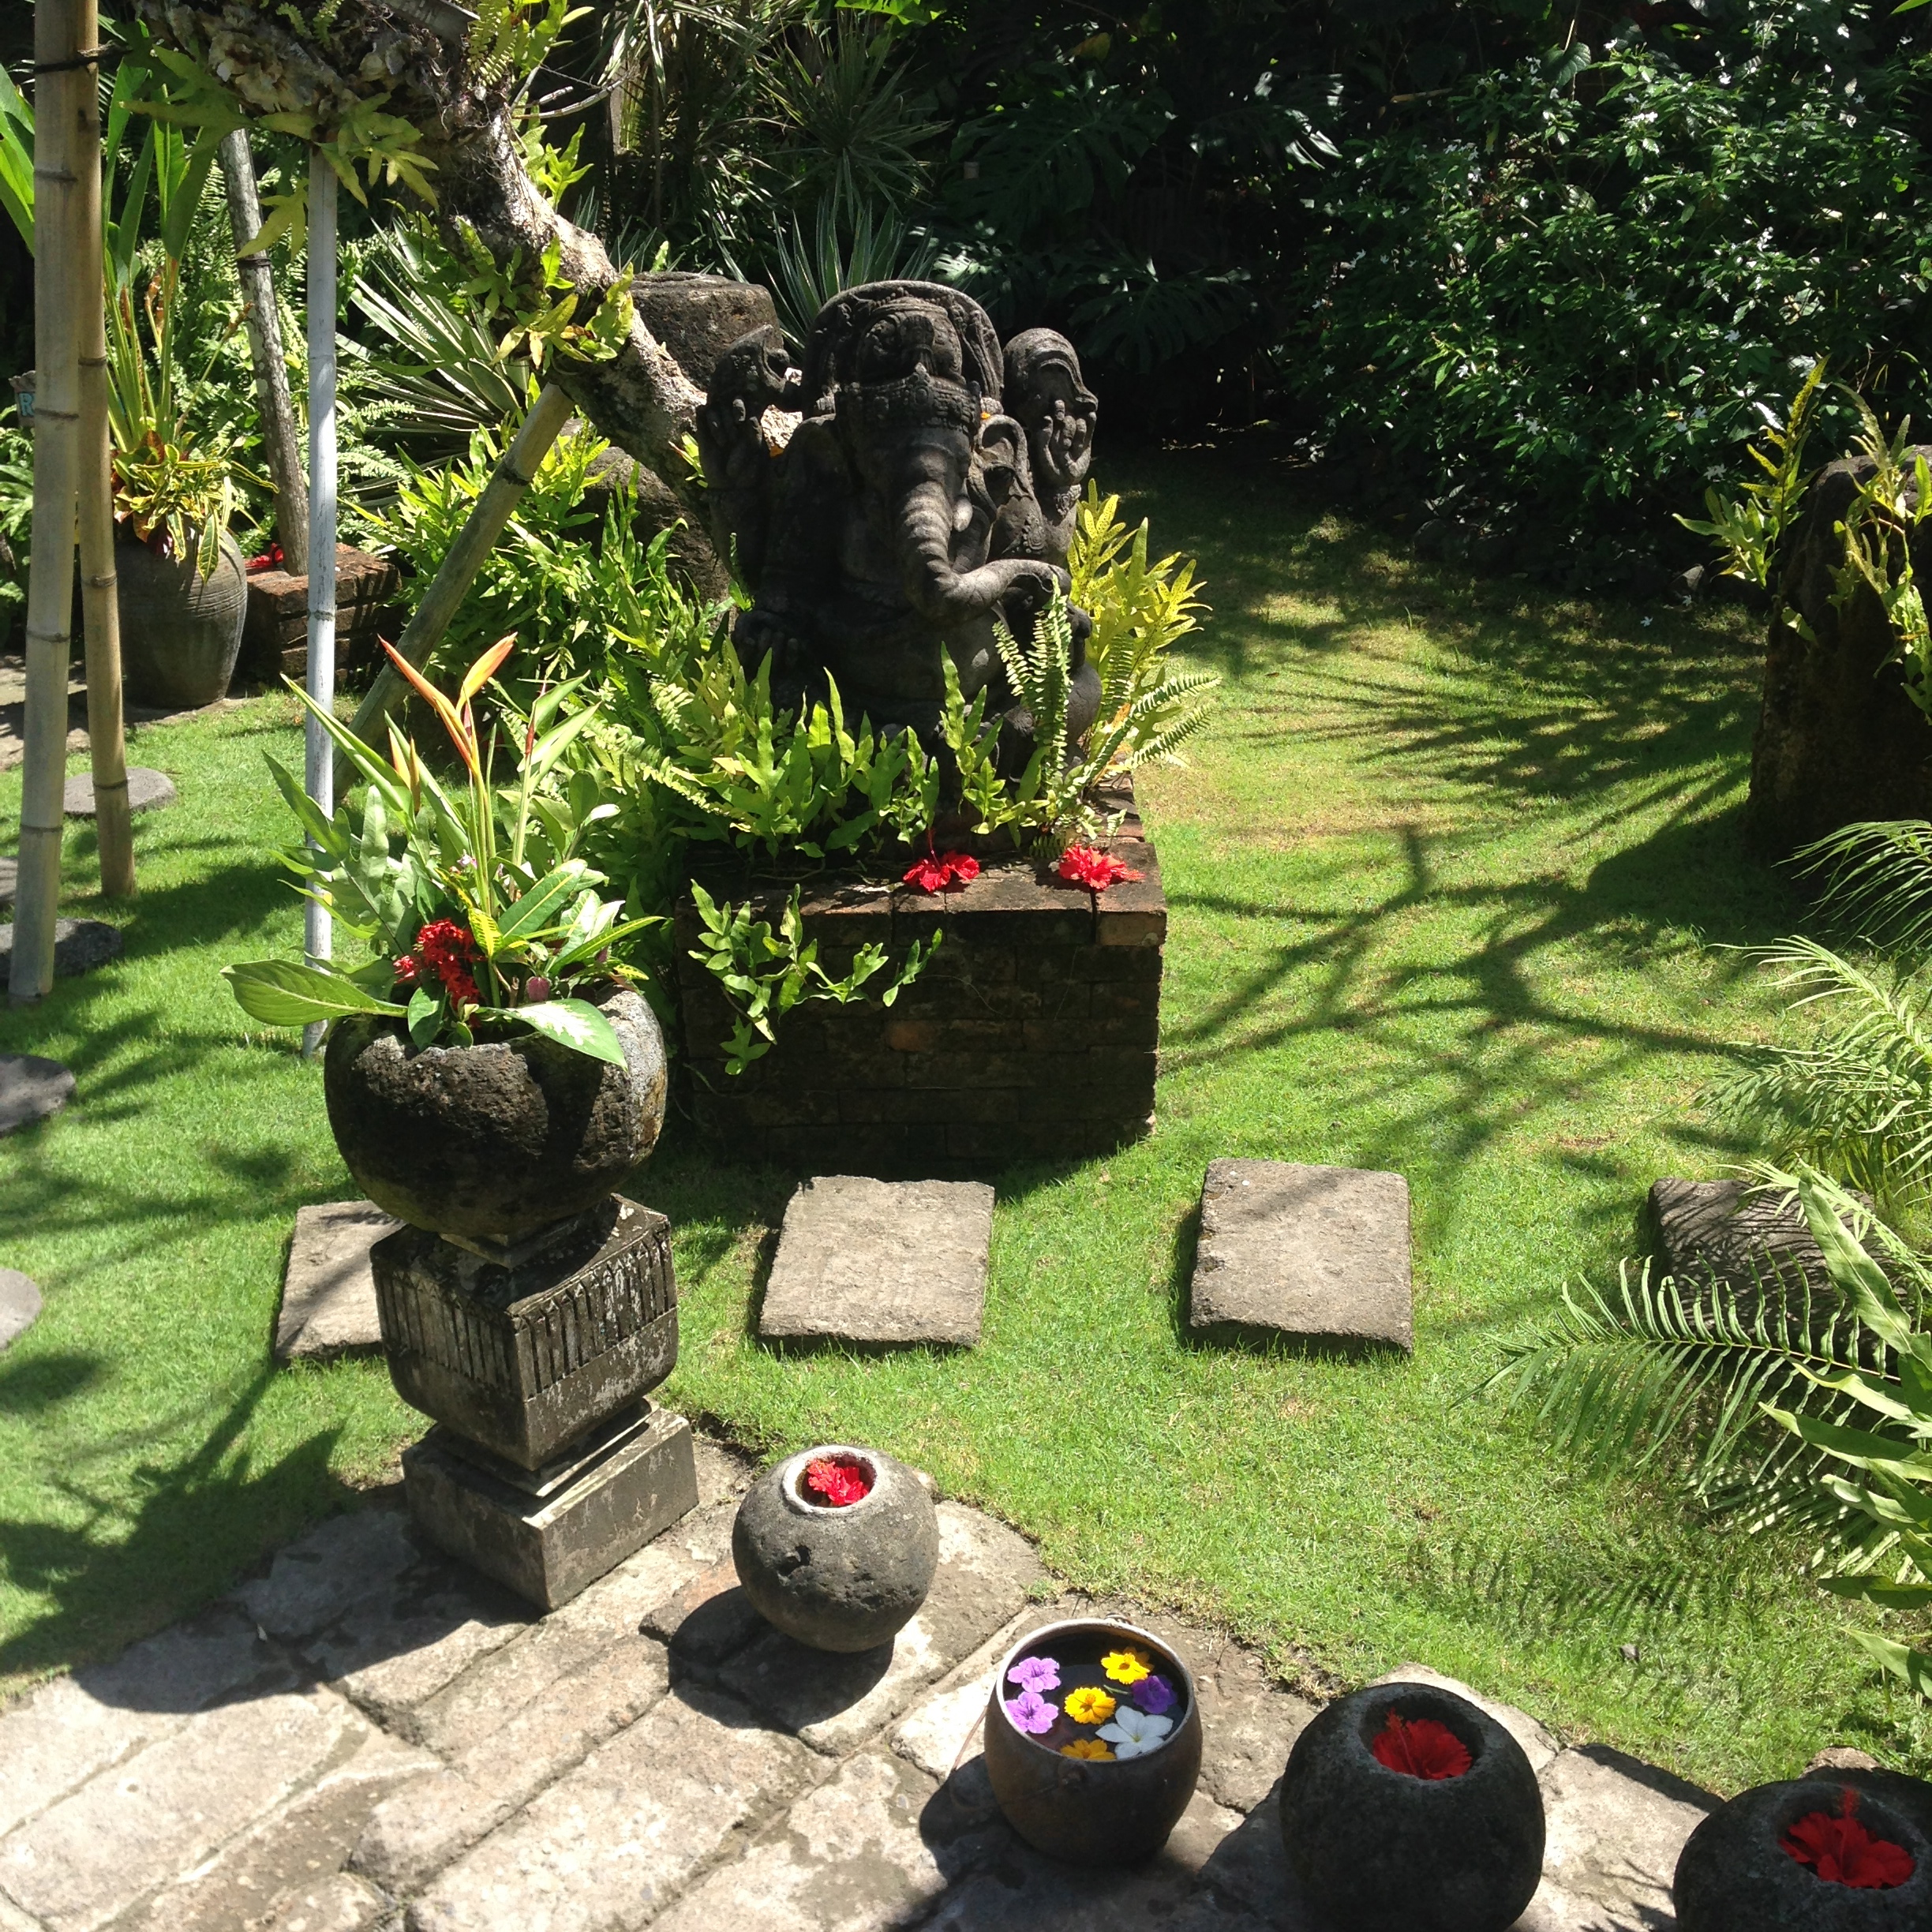 Sunny Canggu. Ganesha at Desa Seni with lots of floating flowers.